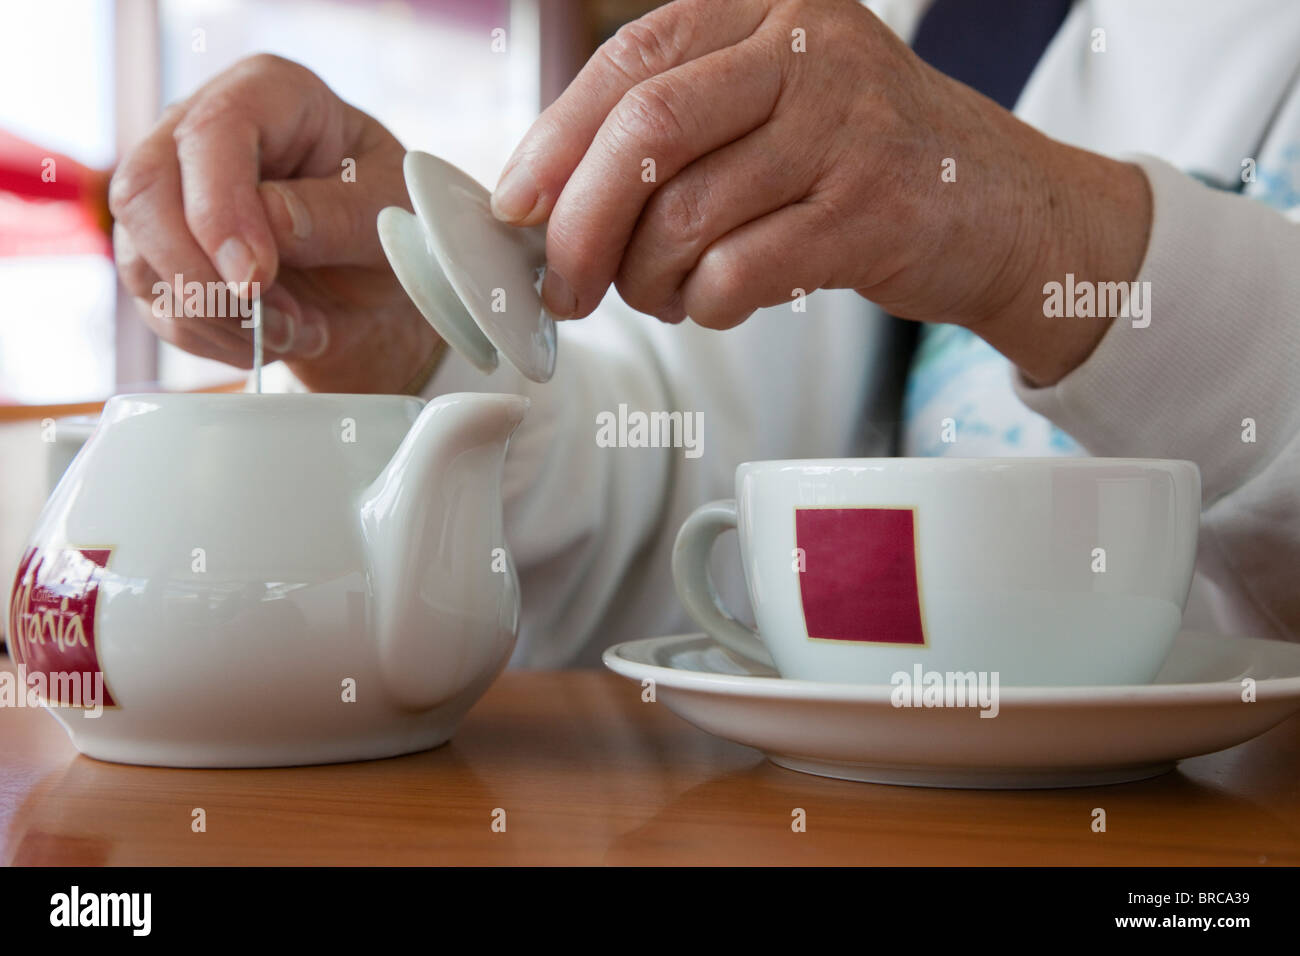 Person in a Coffee Mania café stirring tea in a teapot with a cup and saucer. UK, Britain. - Stock Image